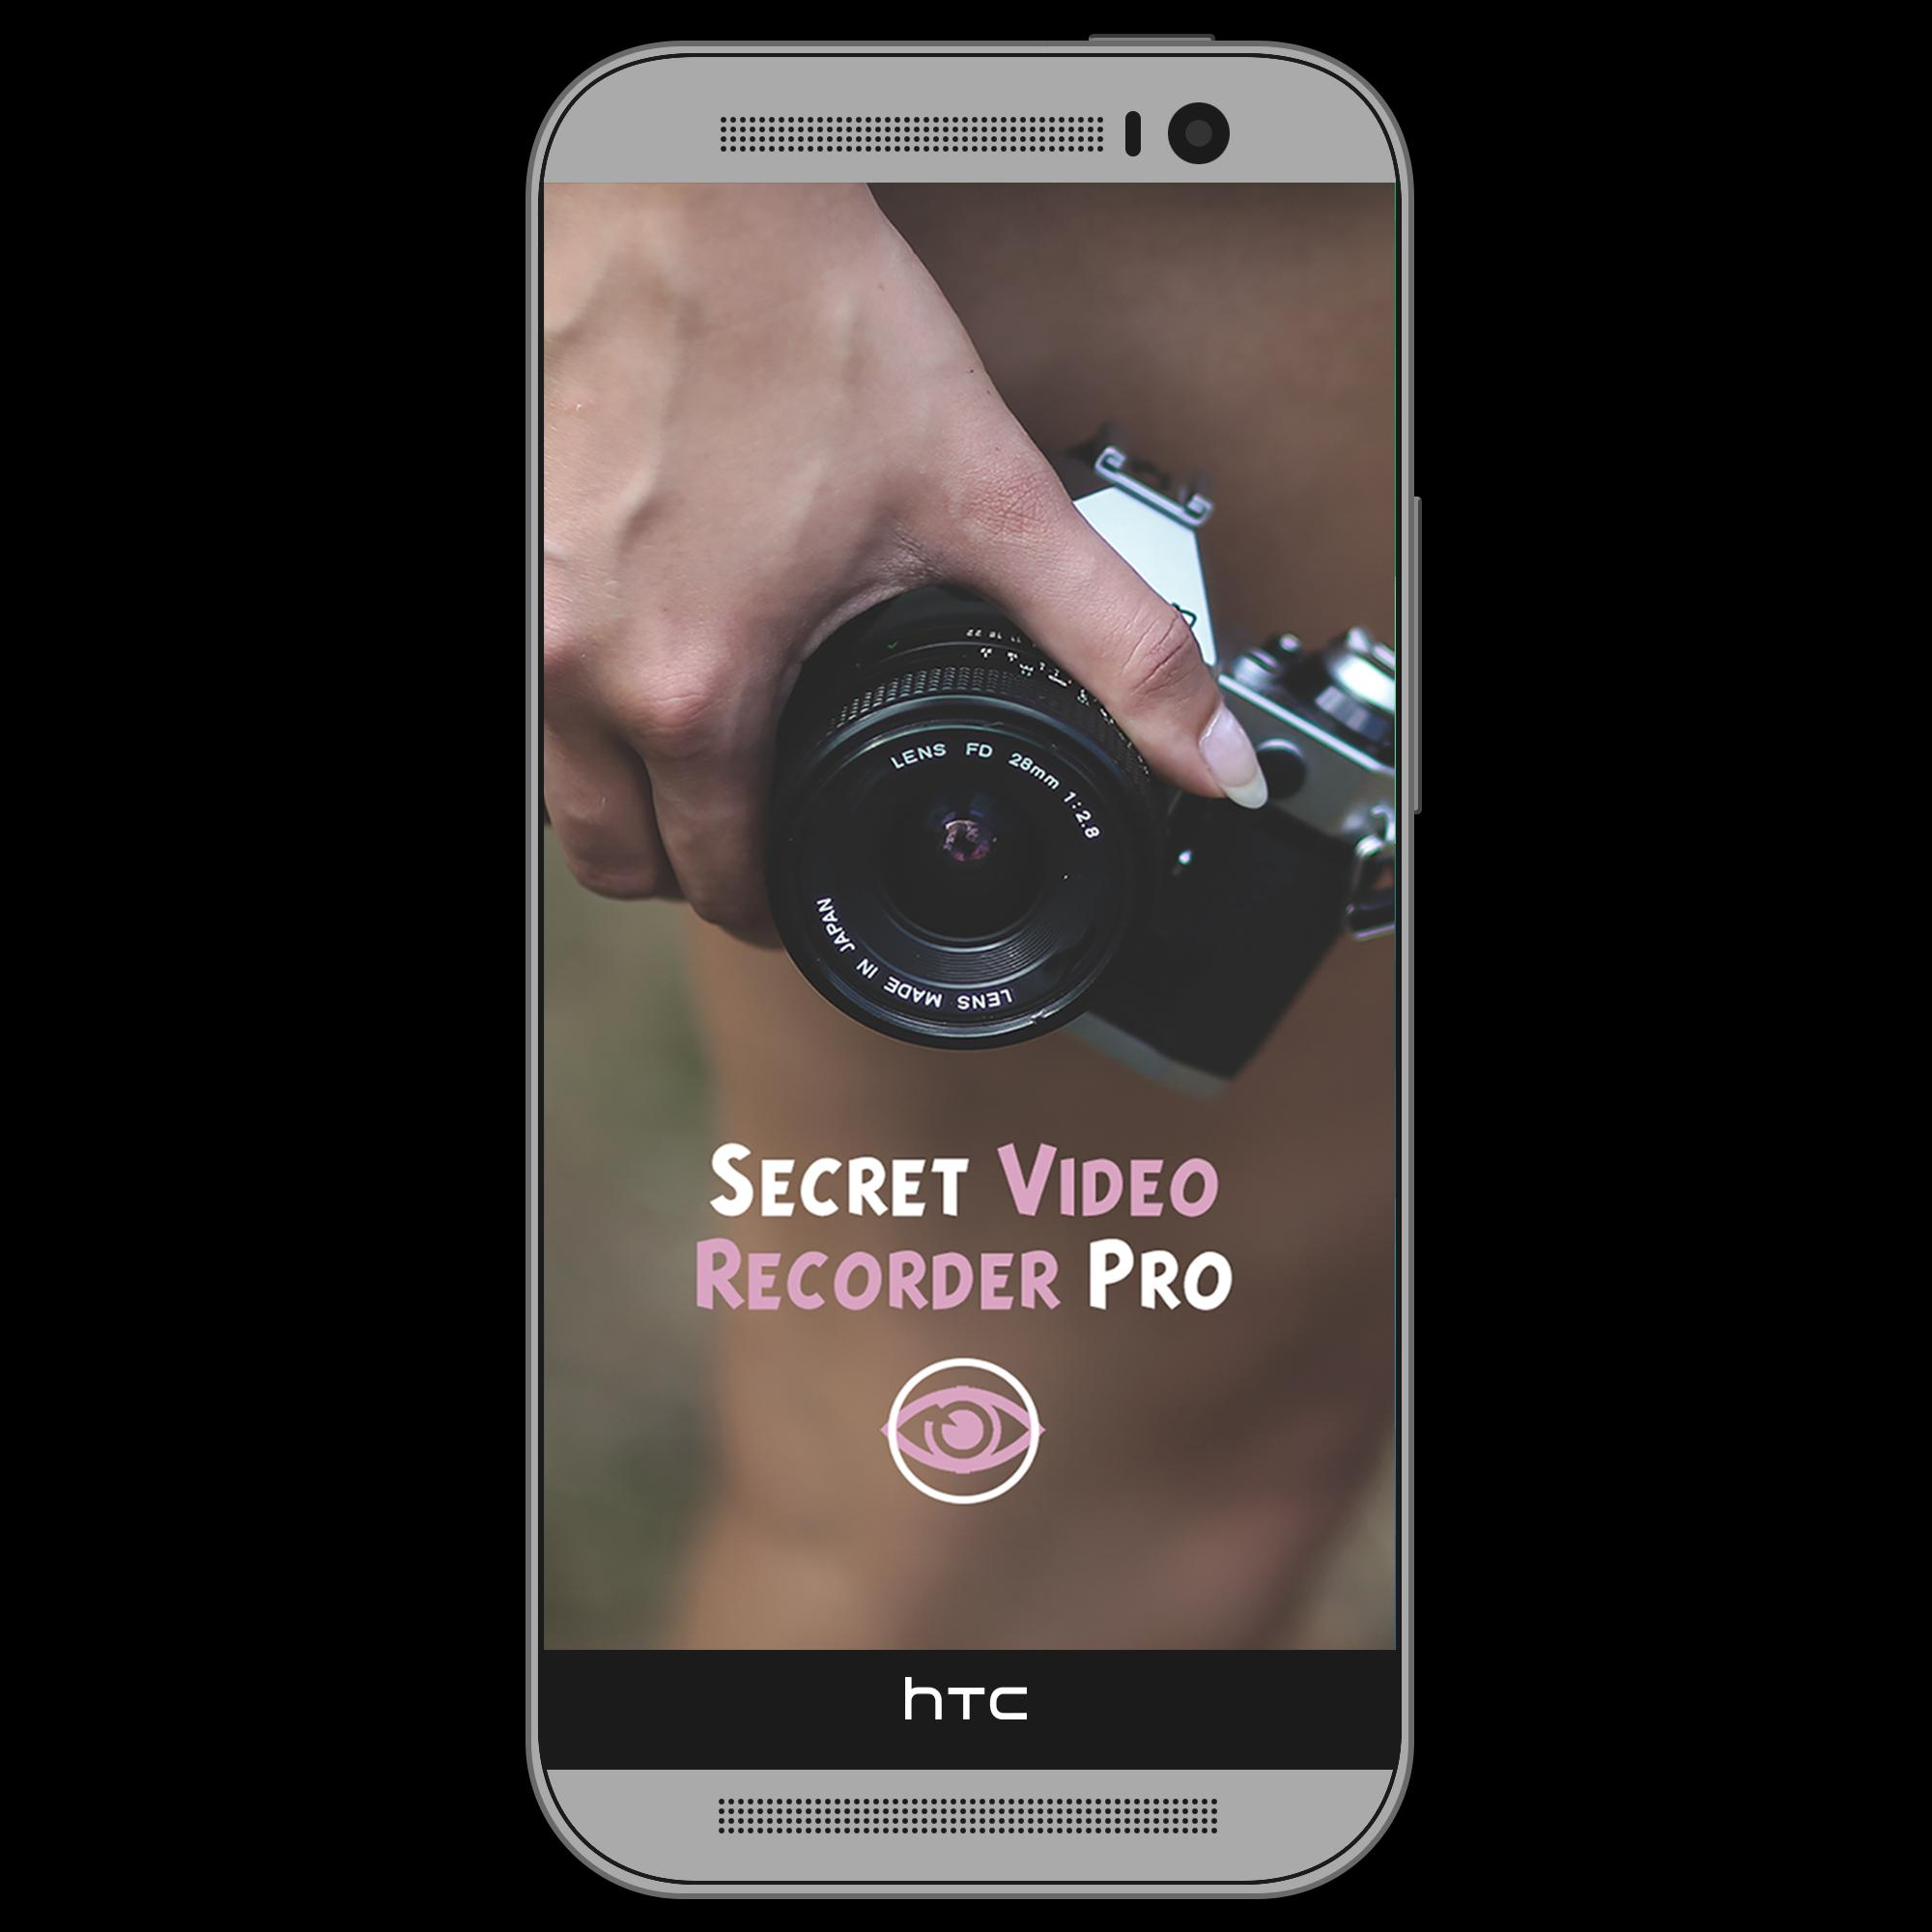 Secret Video Recorder Pro for Android - APK Download